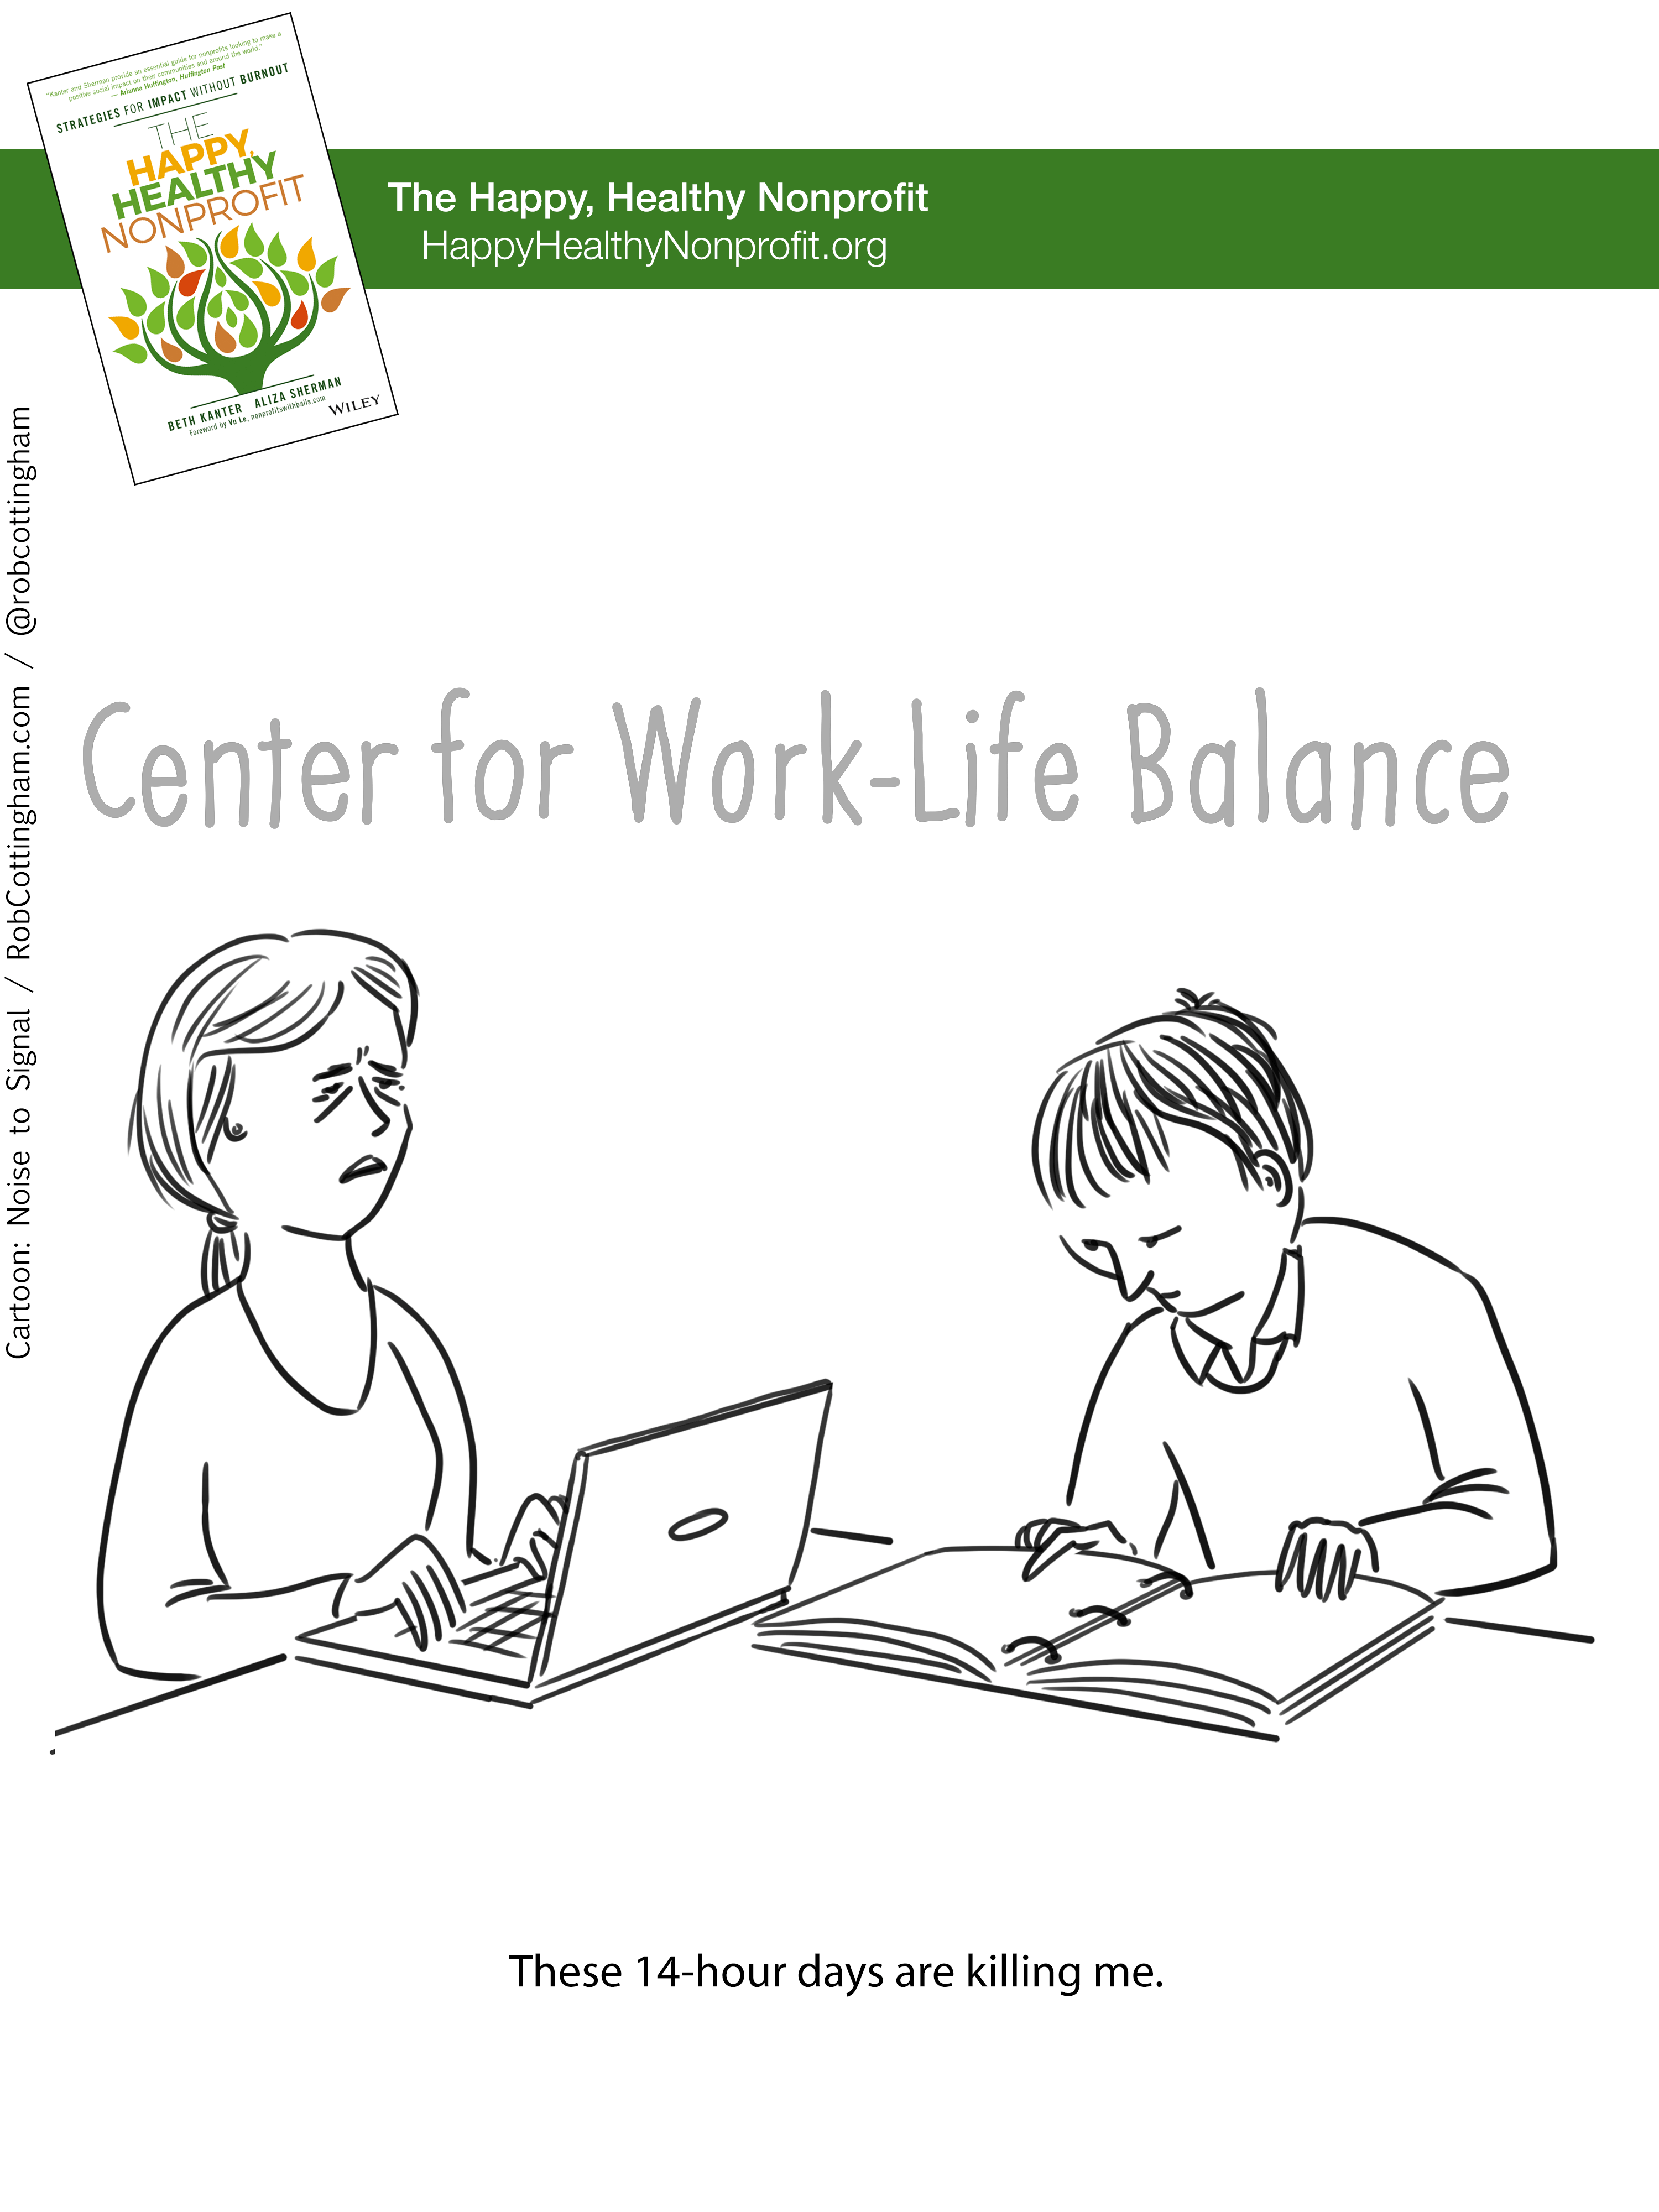 Cartoon: stressed-out people working overtime at the Center for Work-Life balance